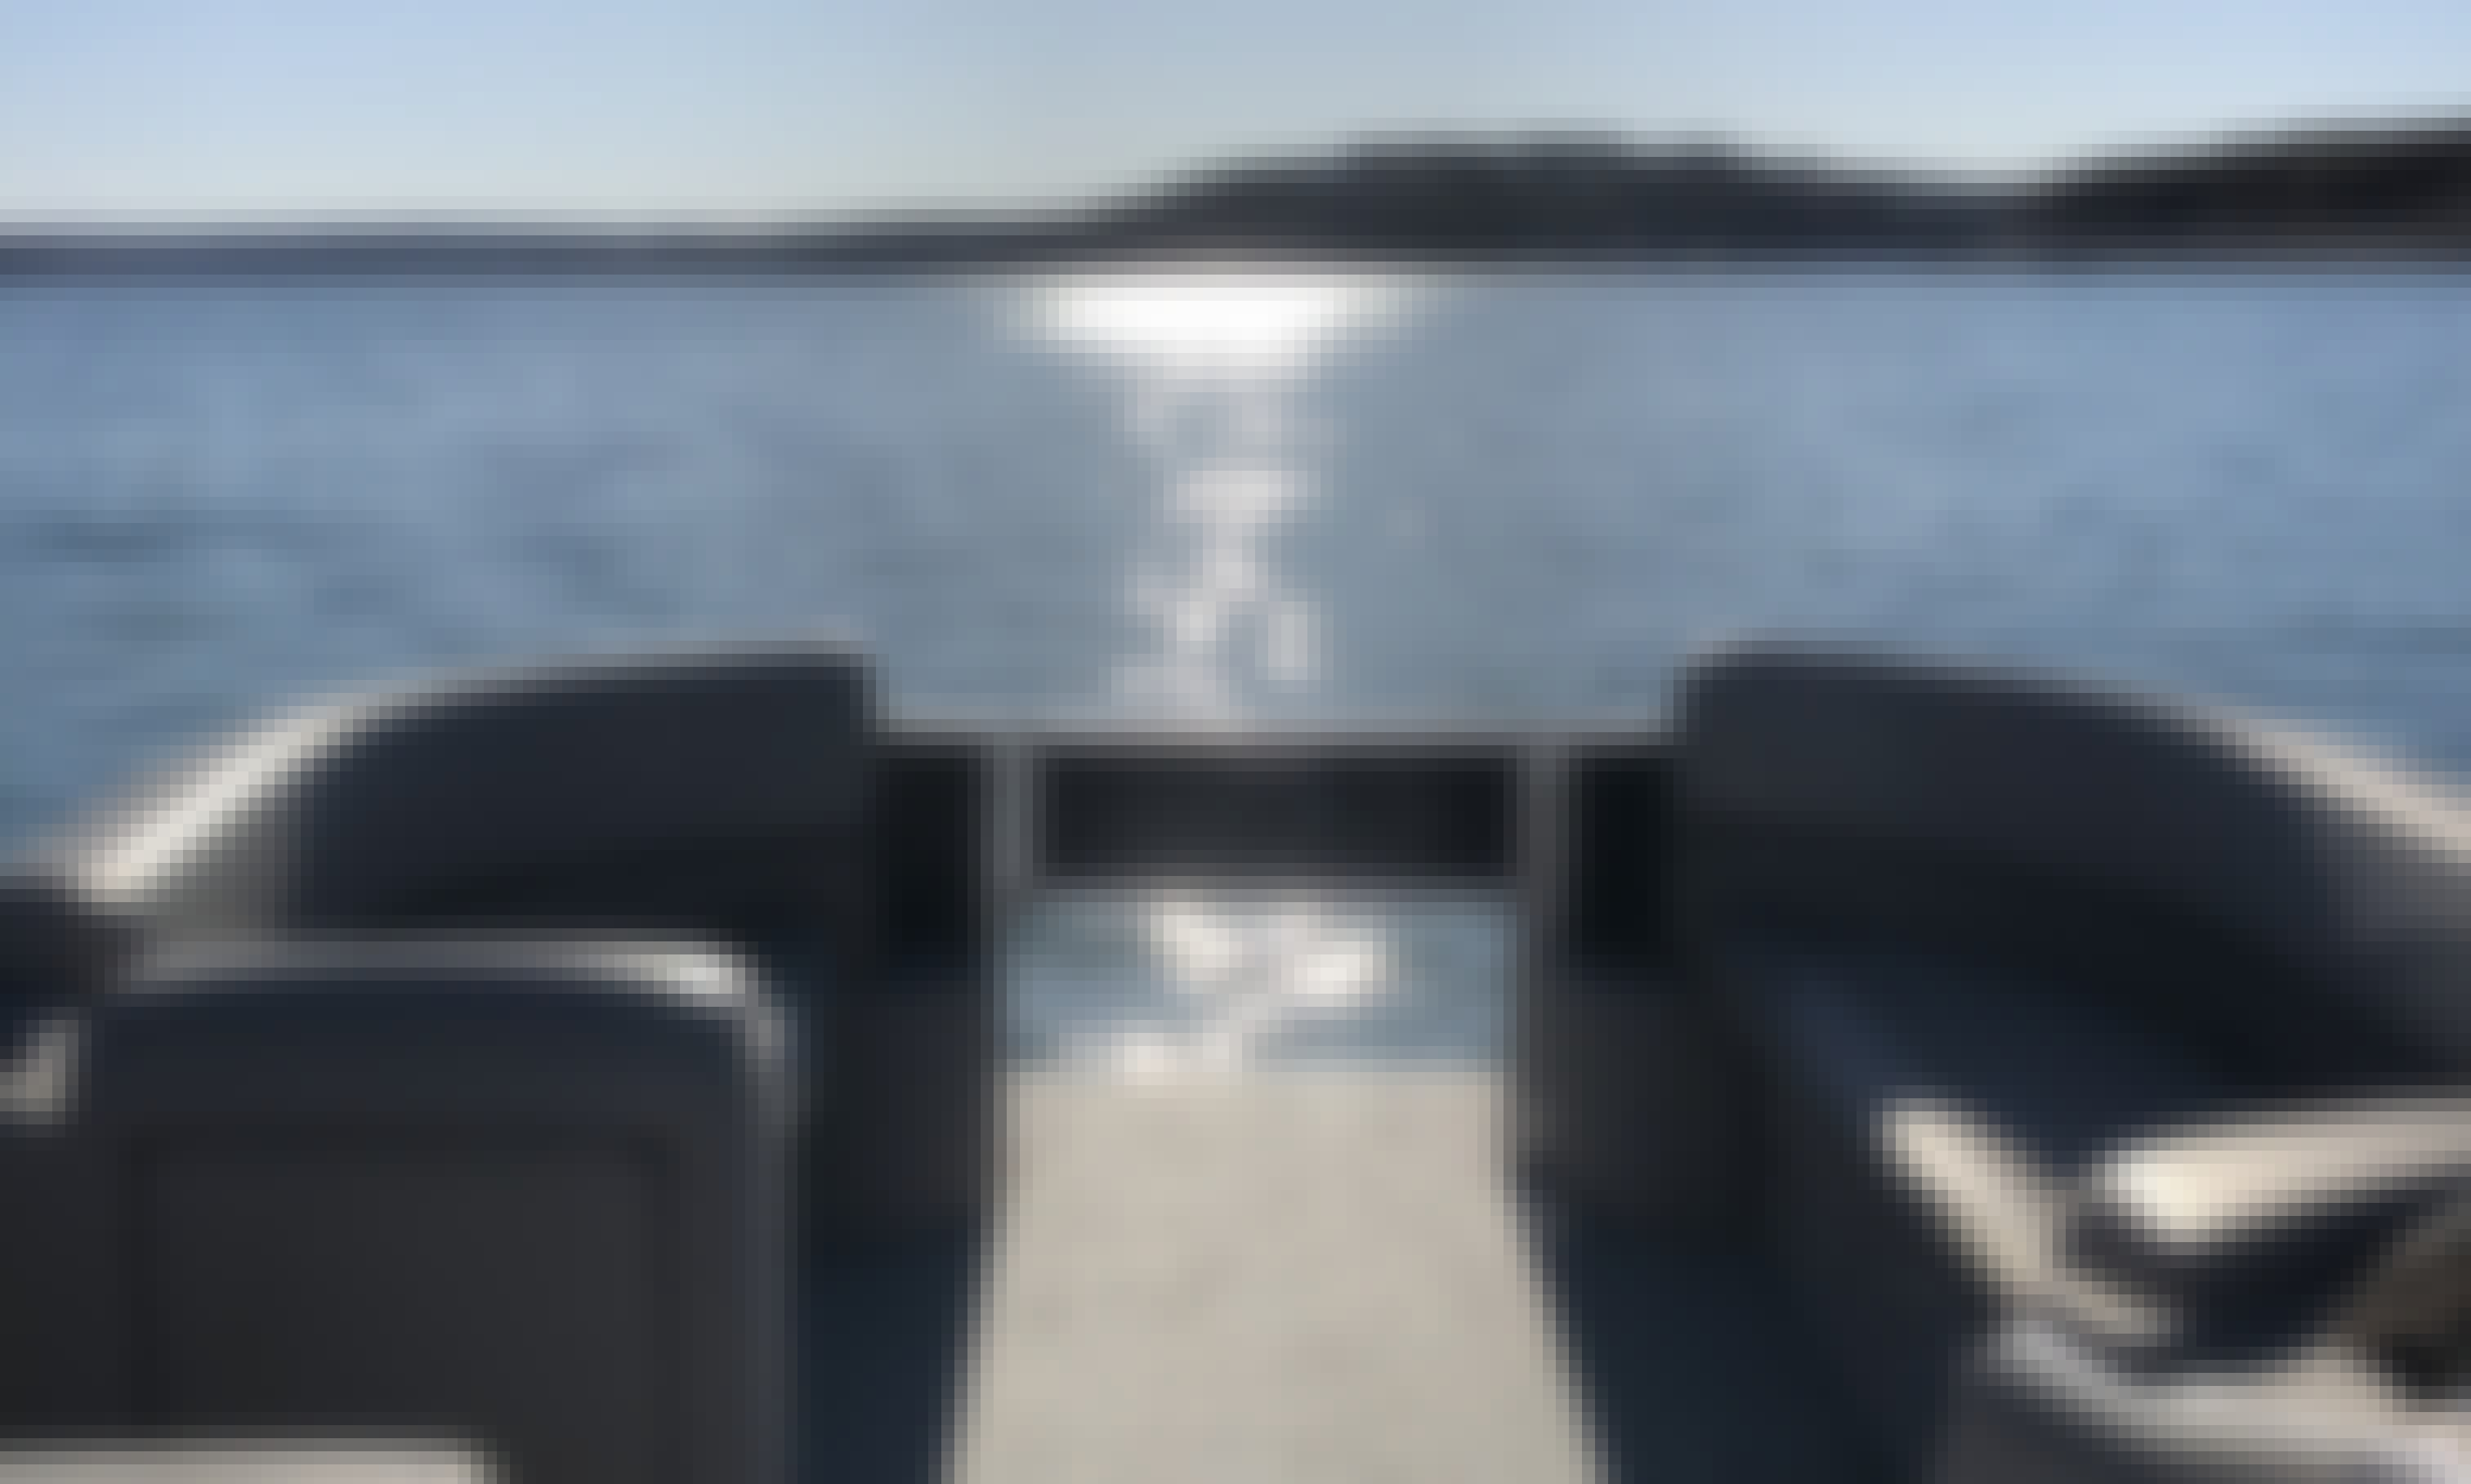 2018 Avalon 22' Pontoon (with watersports extras) in Lago Vista/Lake Travis!